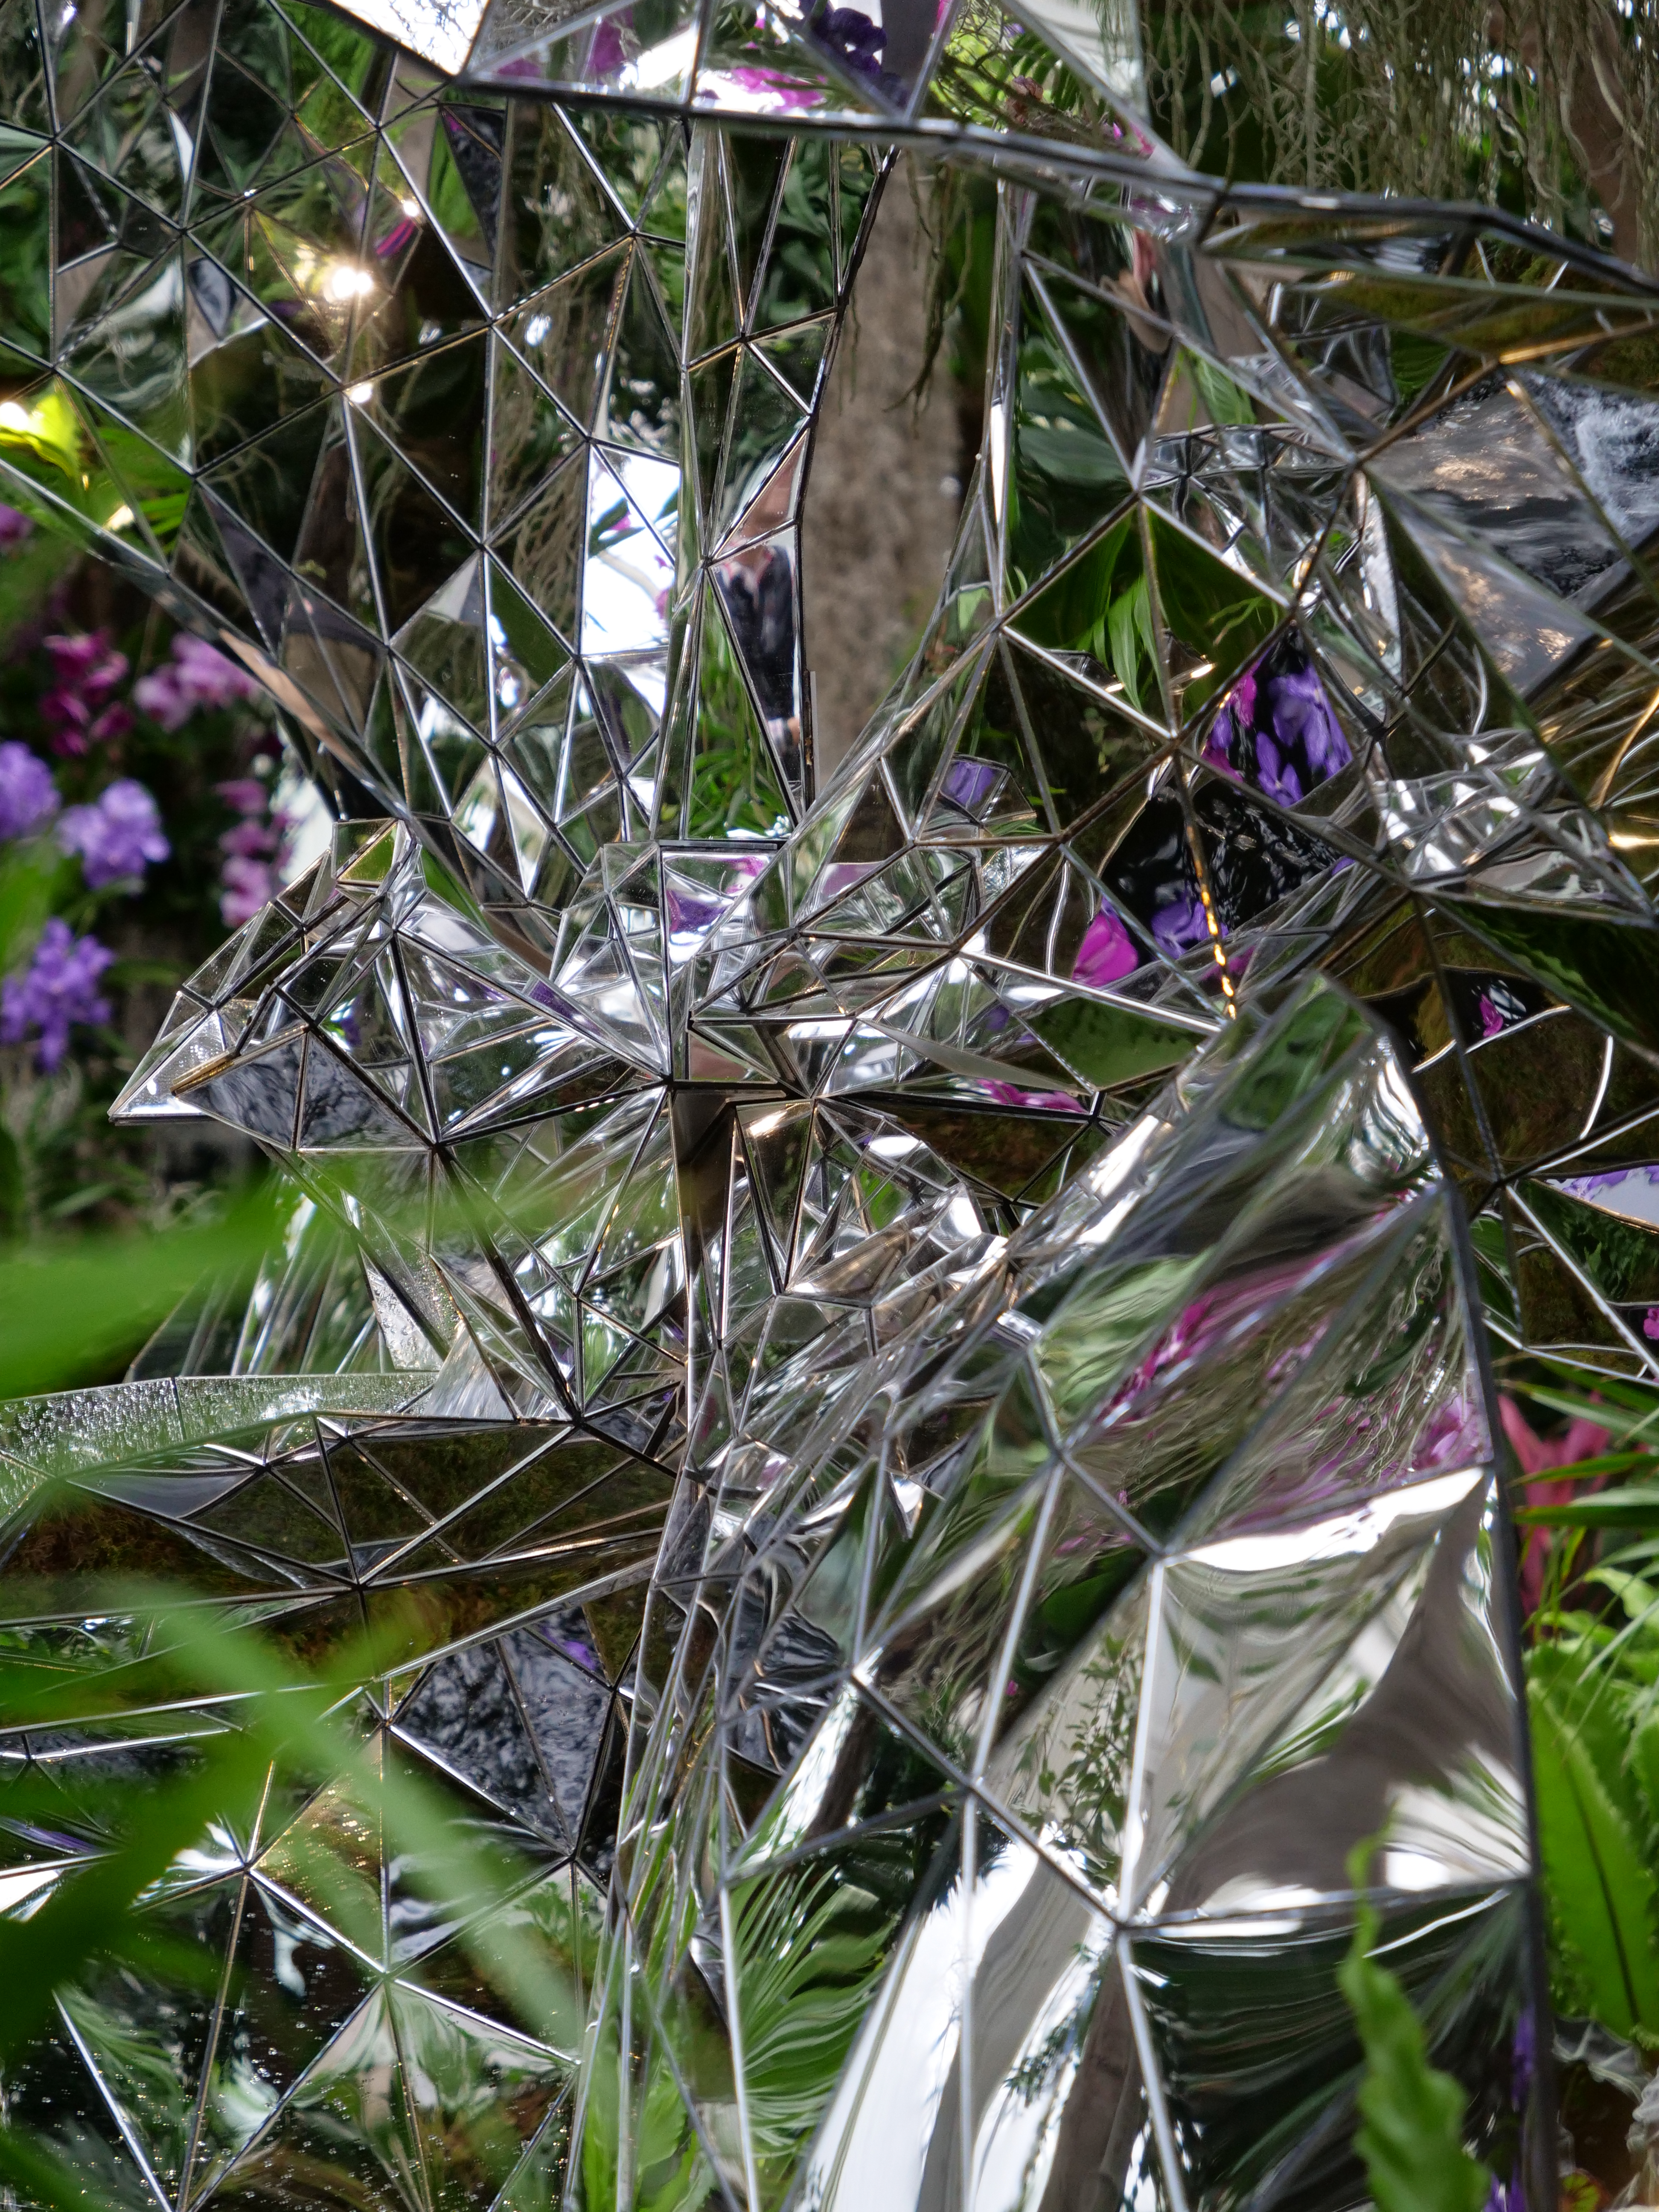 Mirror sculpture Jeff Leatham NYBG Orchid Show NYC 2020